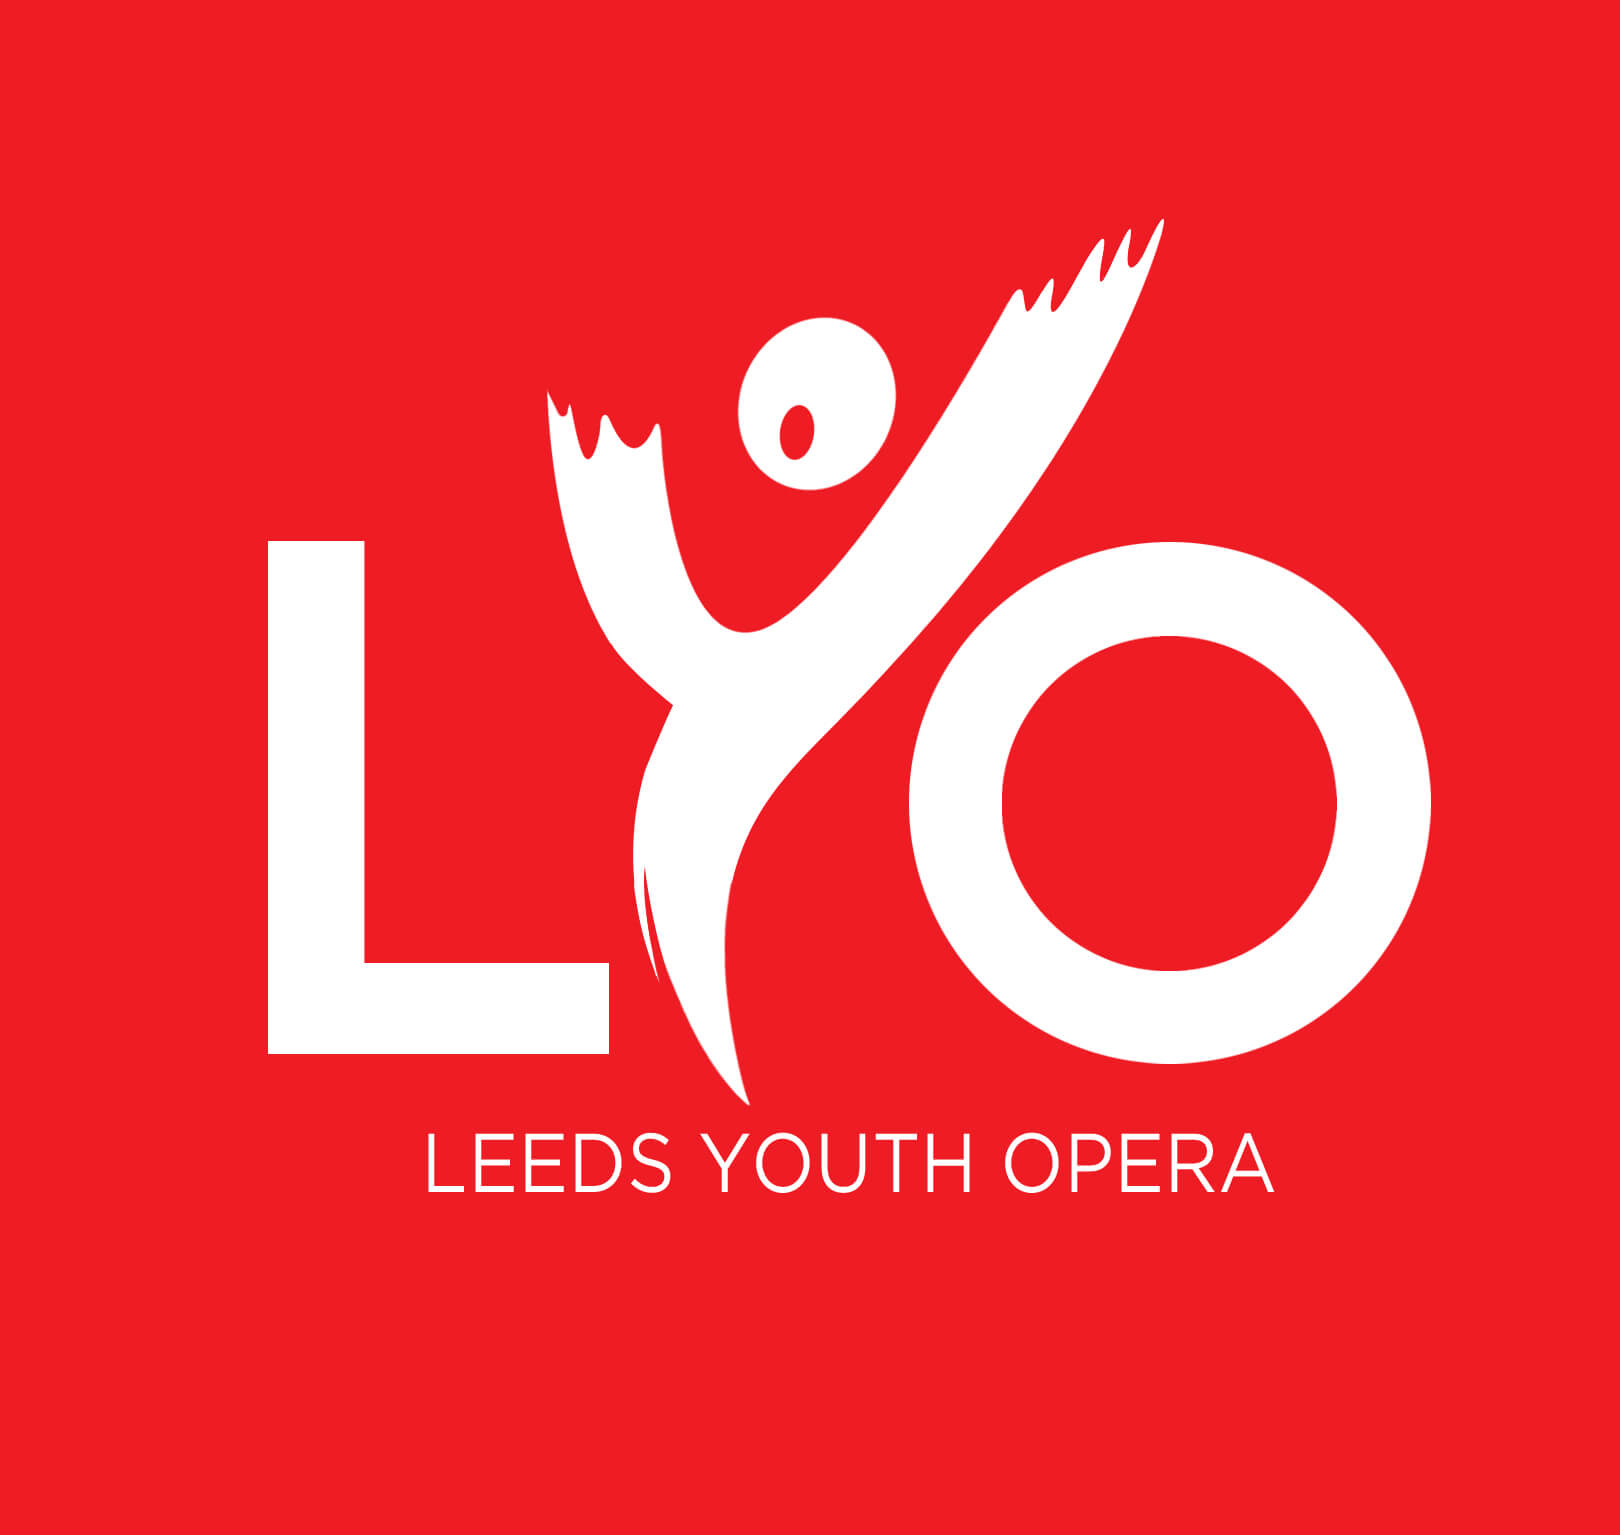 Leeds Youth Opera